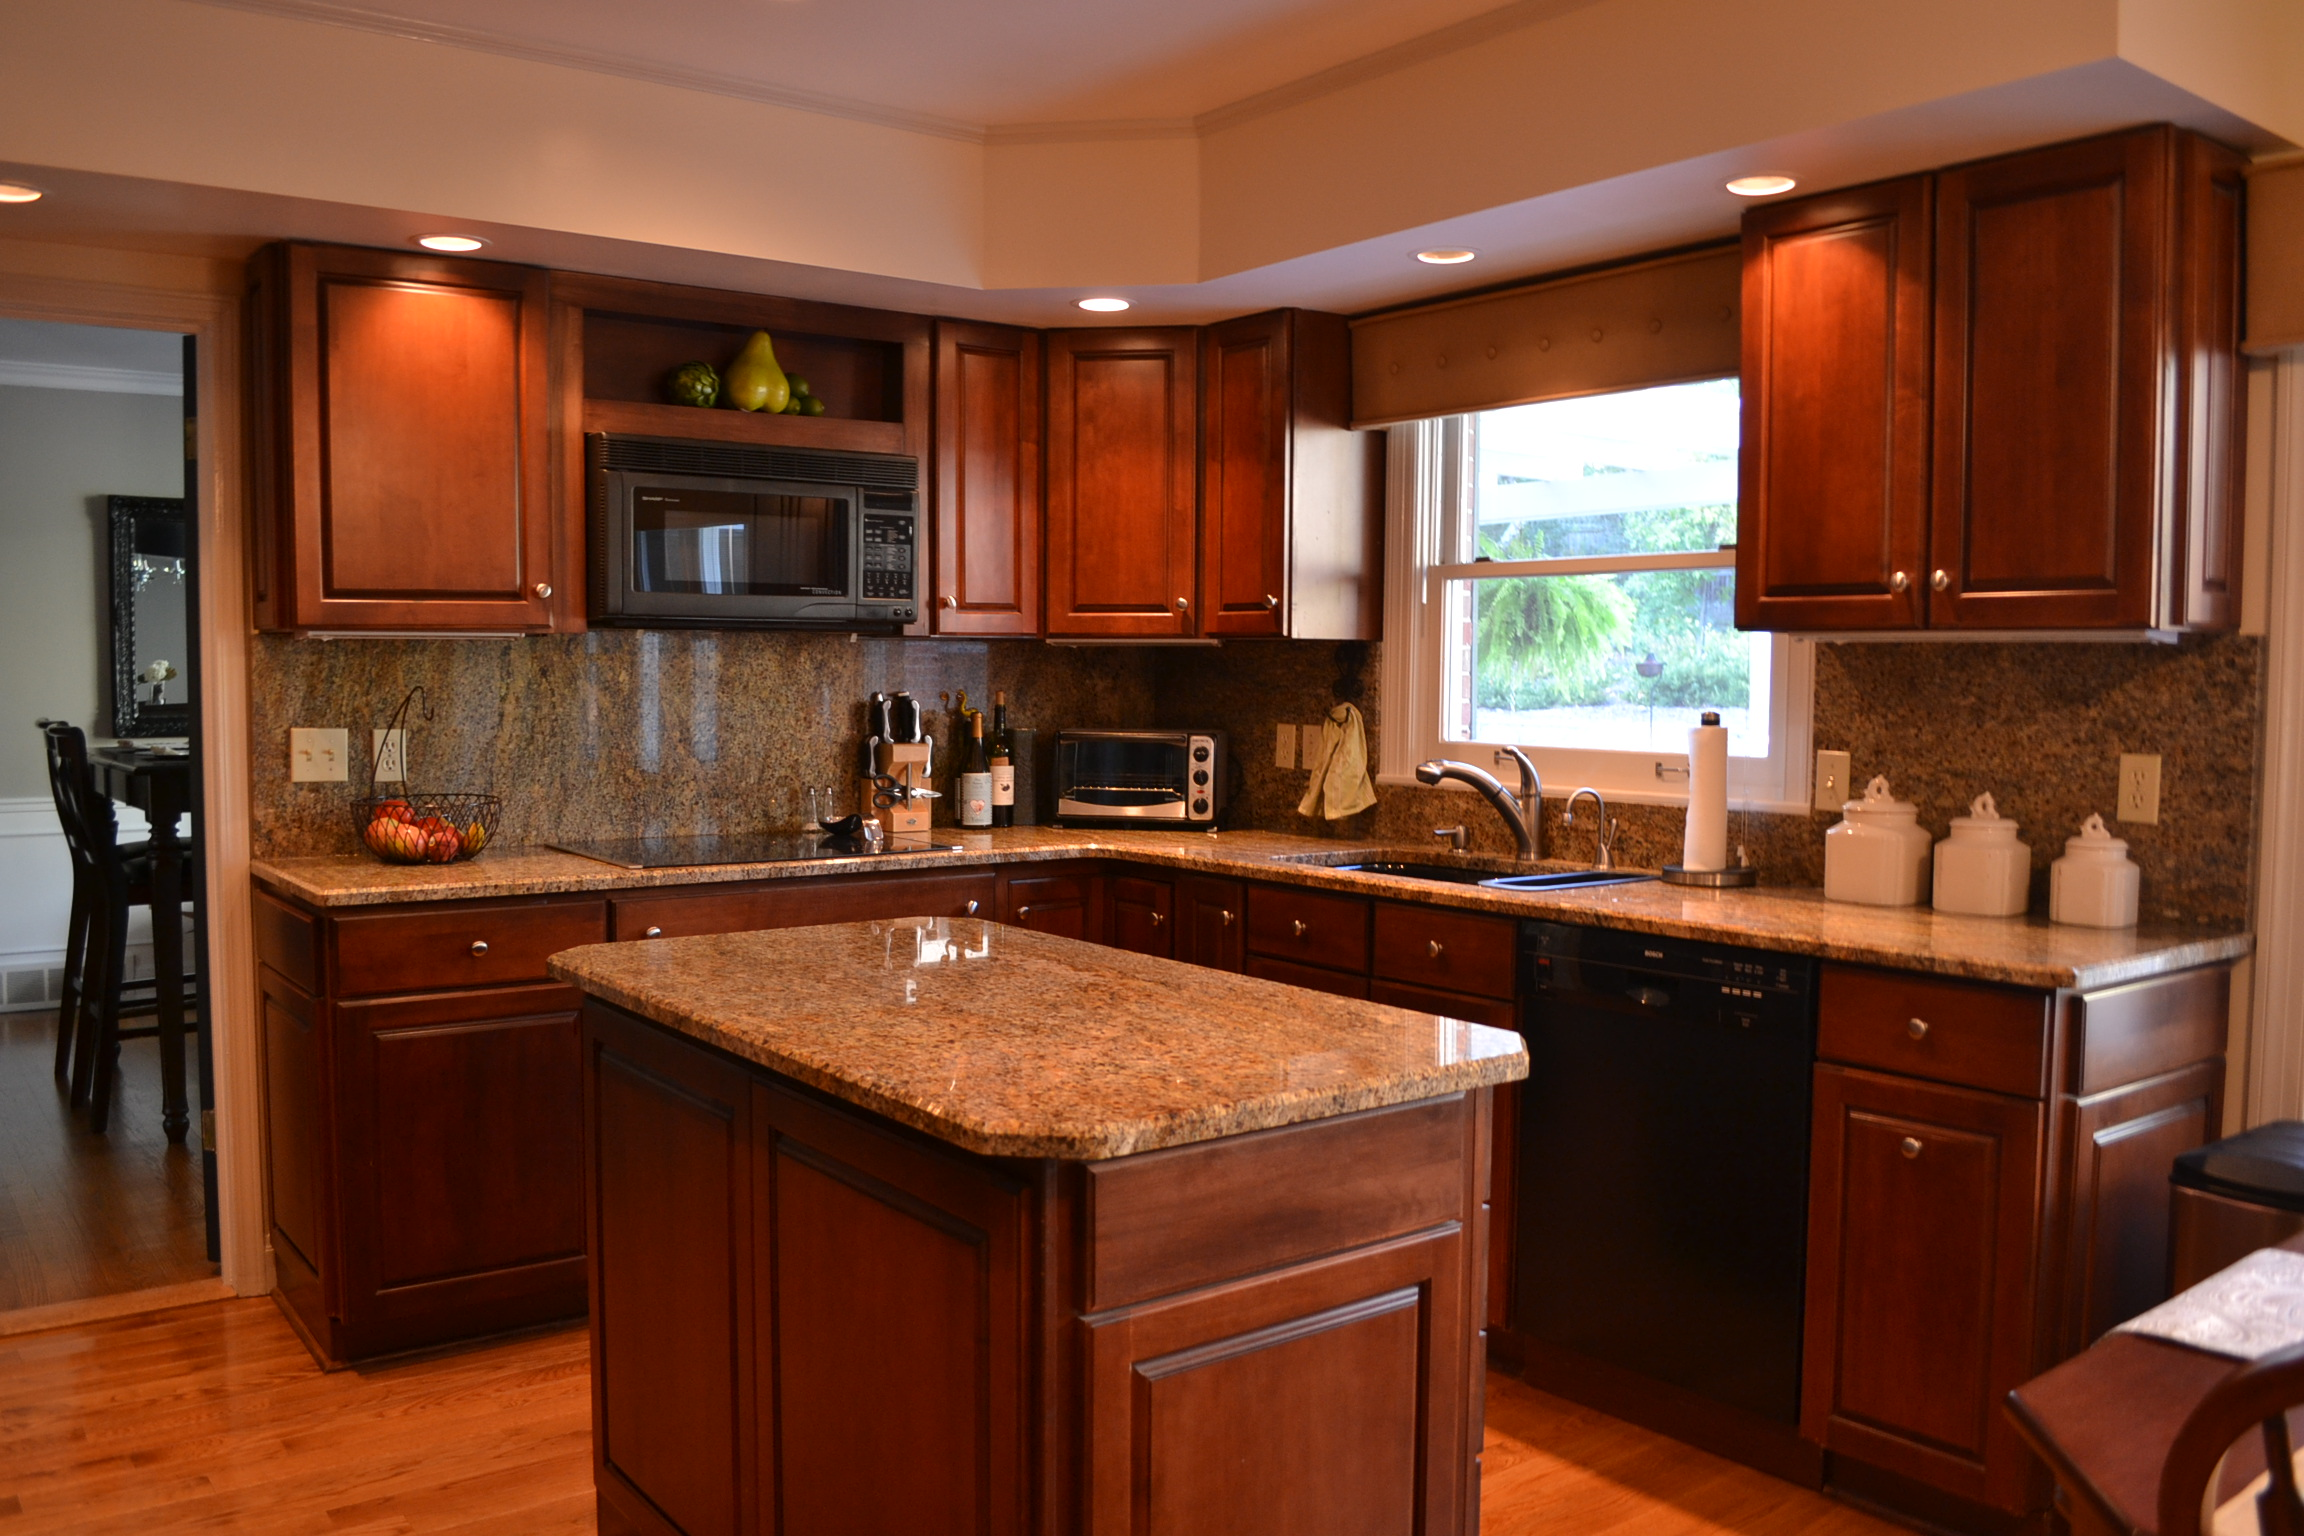 Wonderful Dark Cabinet With Brown Color On ITs Kitchen Set